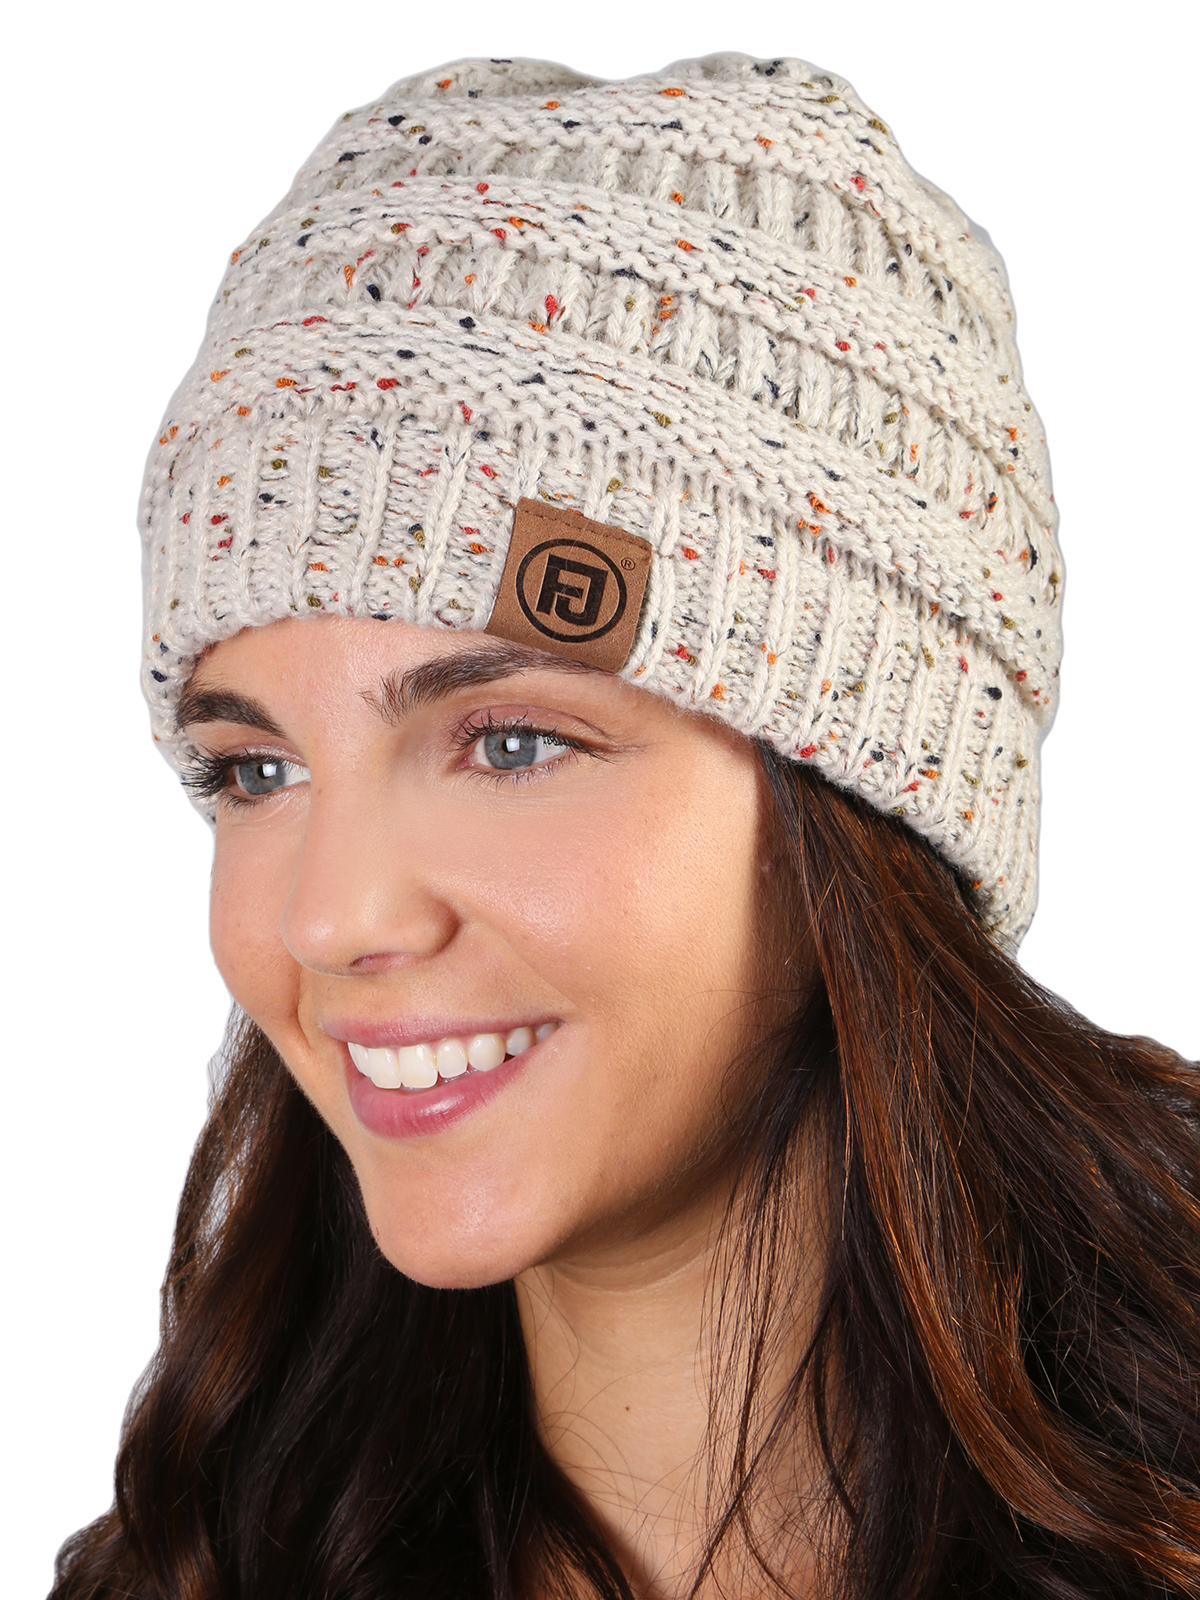 Funky Junque - Funky Junque s FJ Knit Cap Women s Men s Winter Hat Soft  Slightly Slouchy Confetti Beanie - Melange Grey - Walmart.com cf224684607b